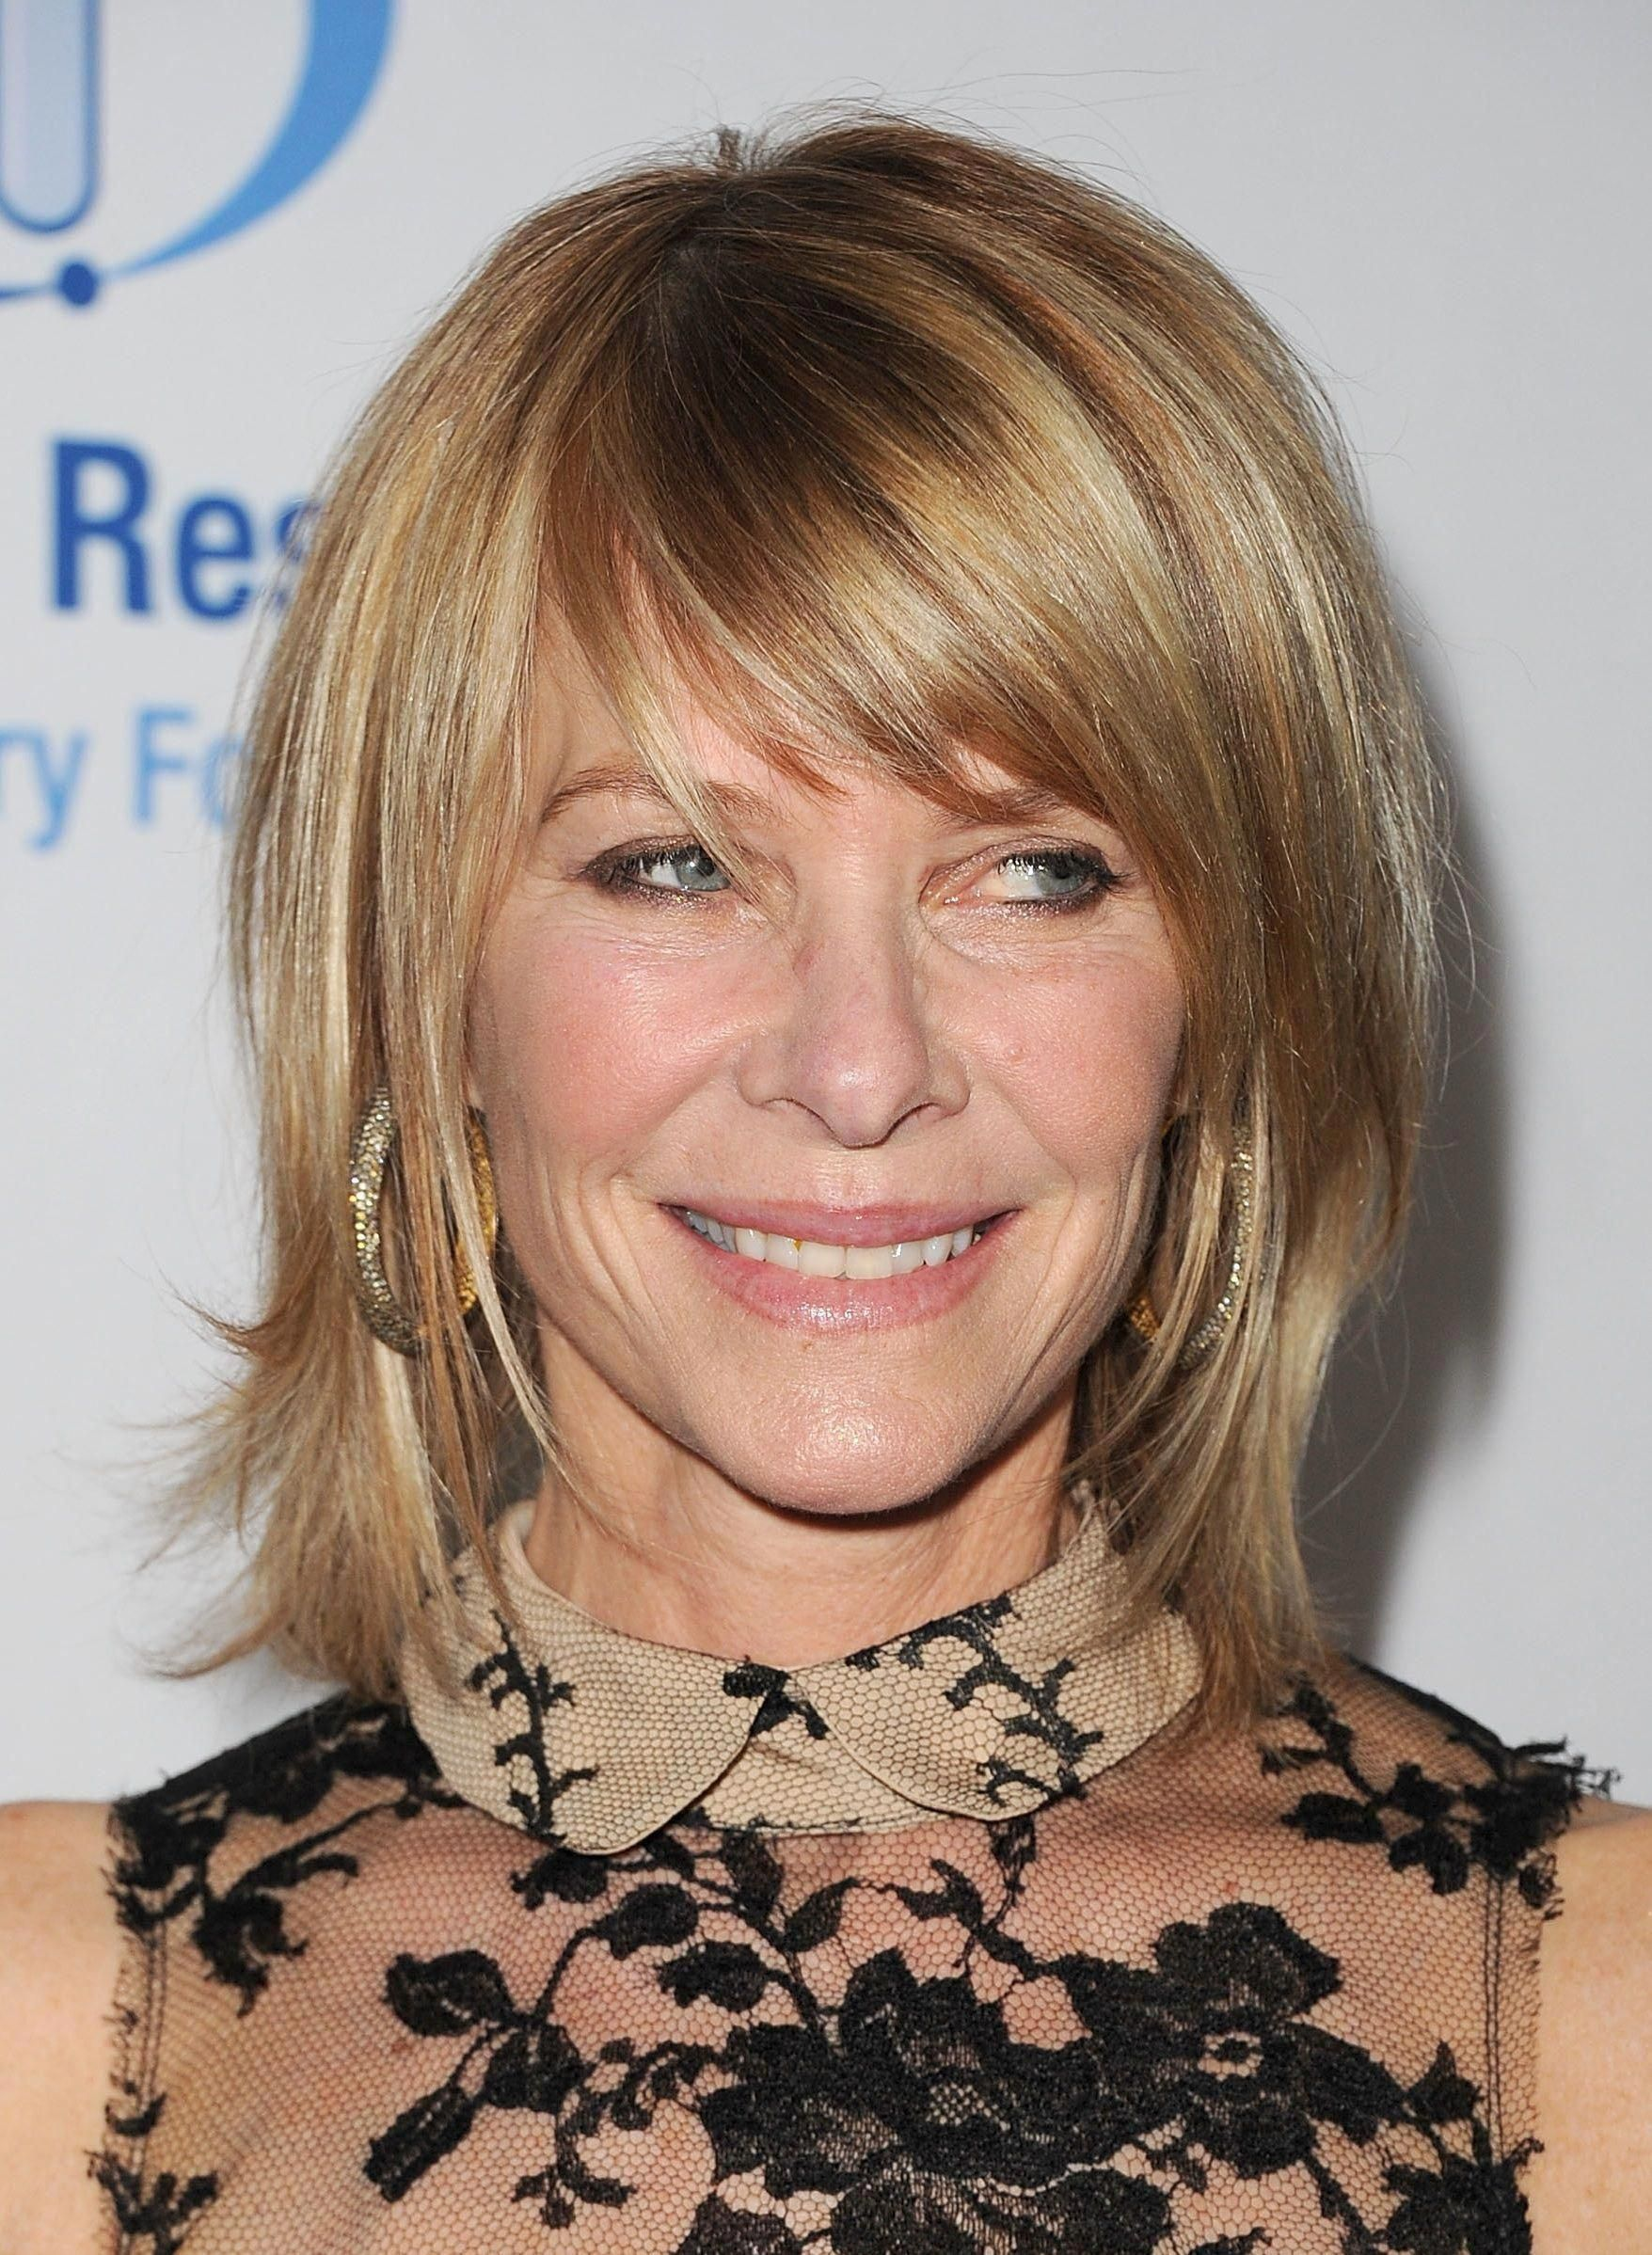 Over 60 Get Haircut Inspiration From These Celebrities In 2020 Hair Styles For Women Over 50 Haircut Styles For Women Medium Hair Styles